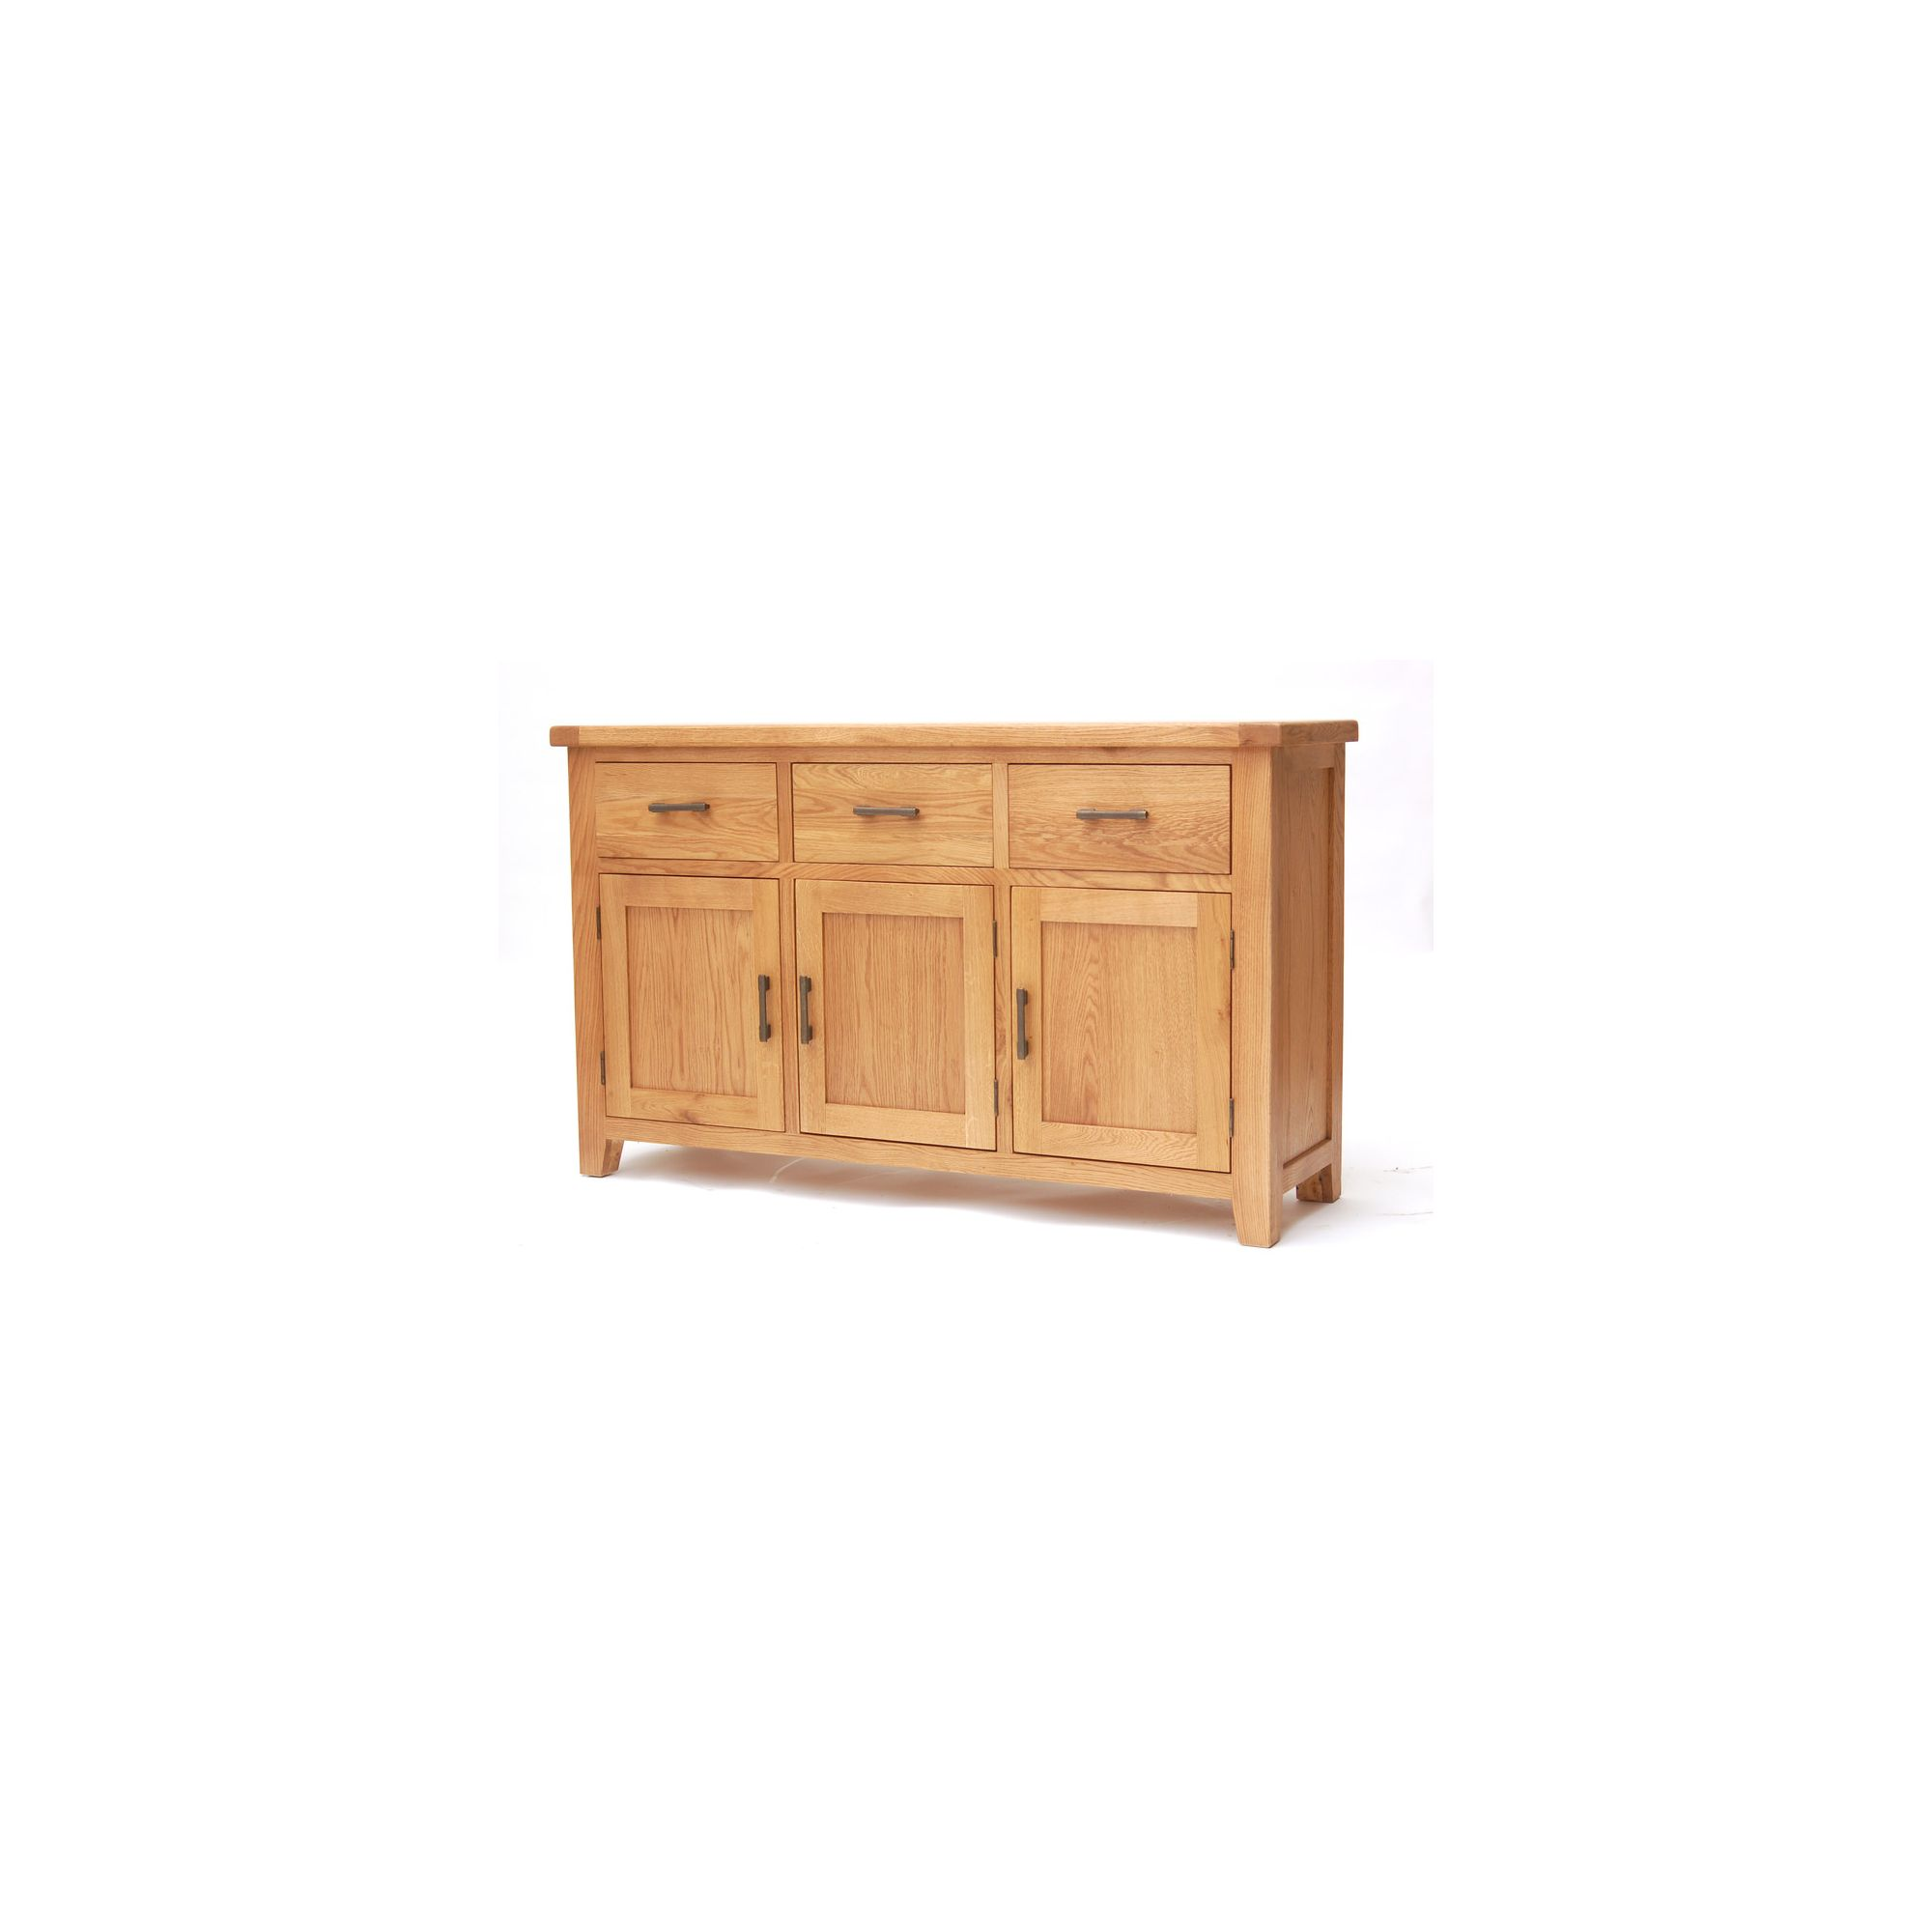 Furniture Link Hampshire Large Sideboard at Tesco Direct